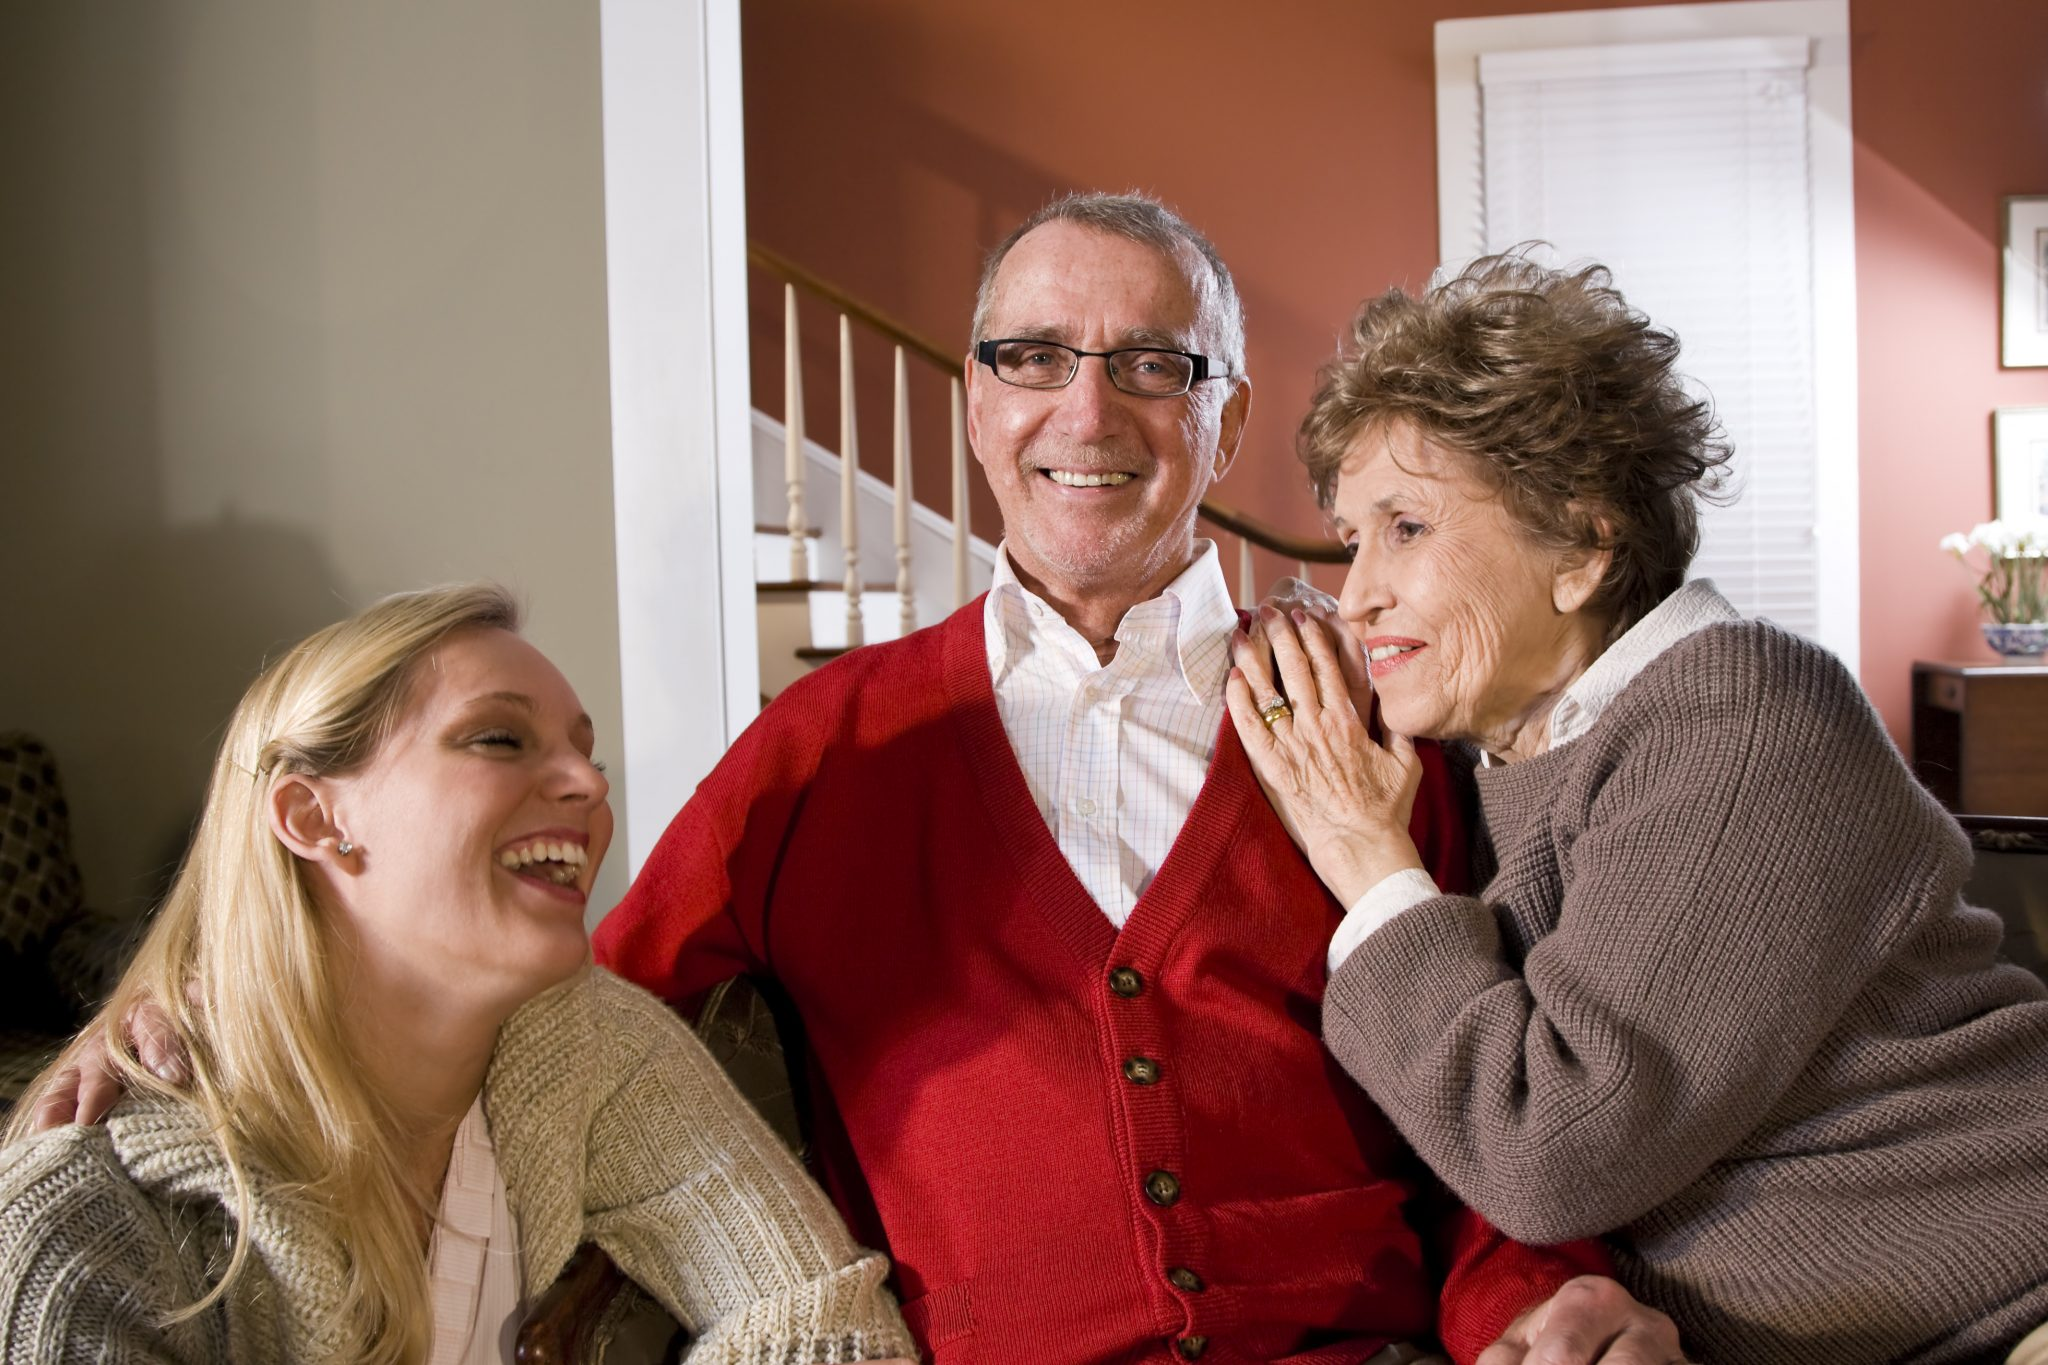 Why should I discuss end of life decisions with my loved ones now?